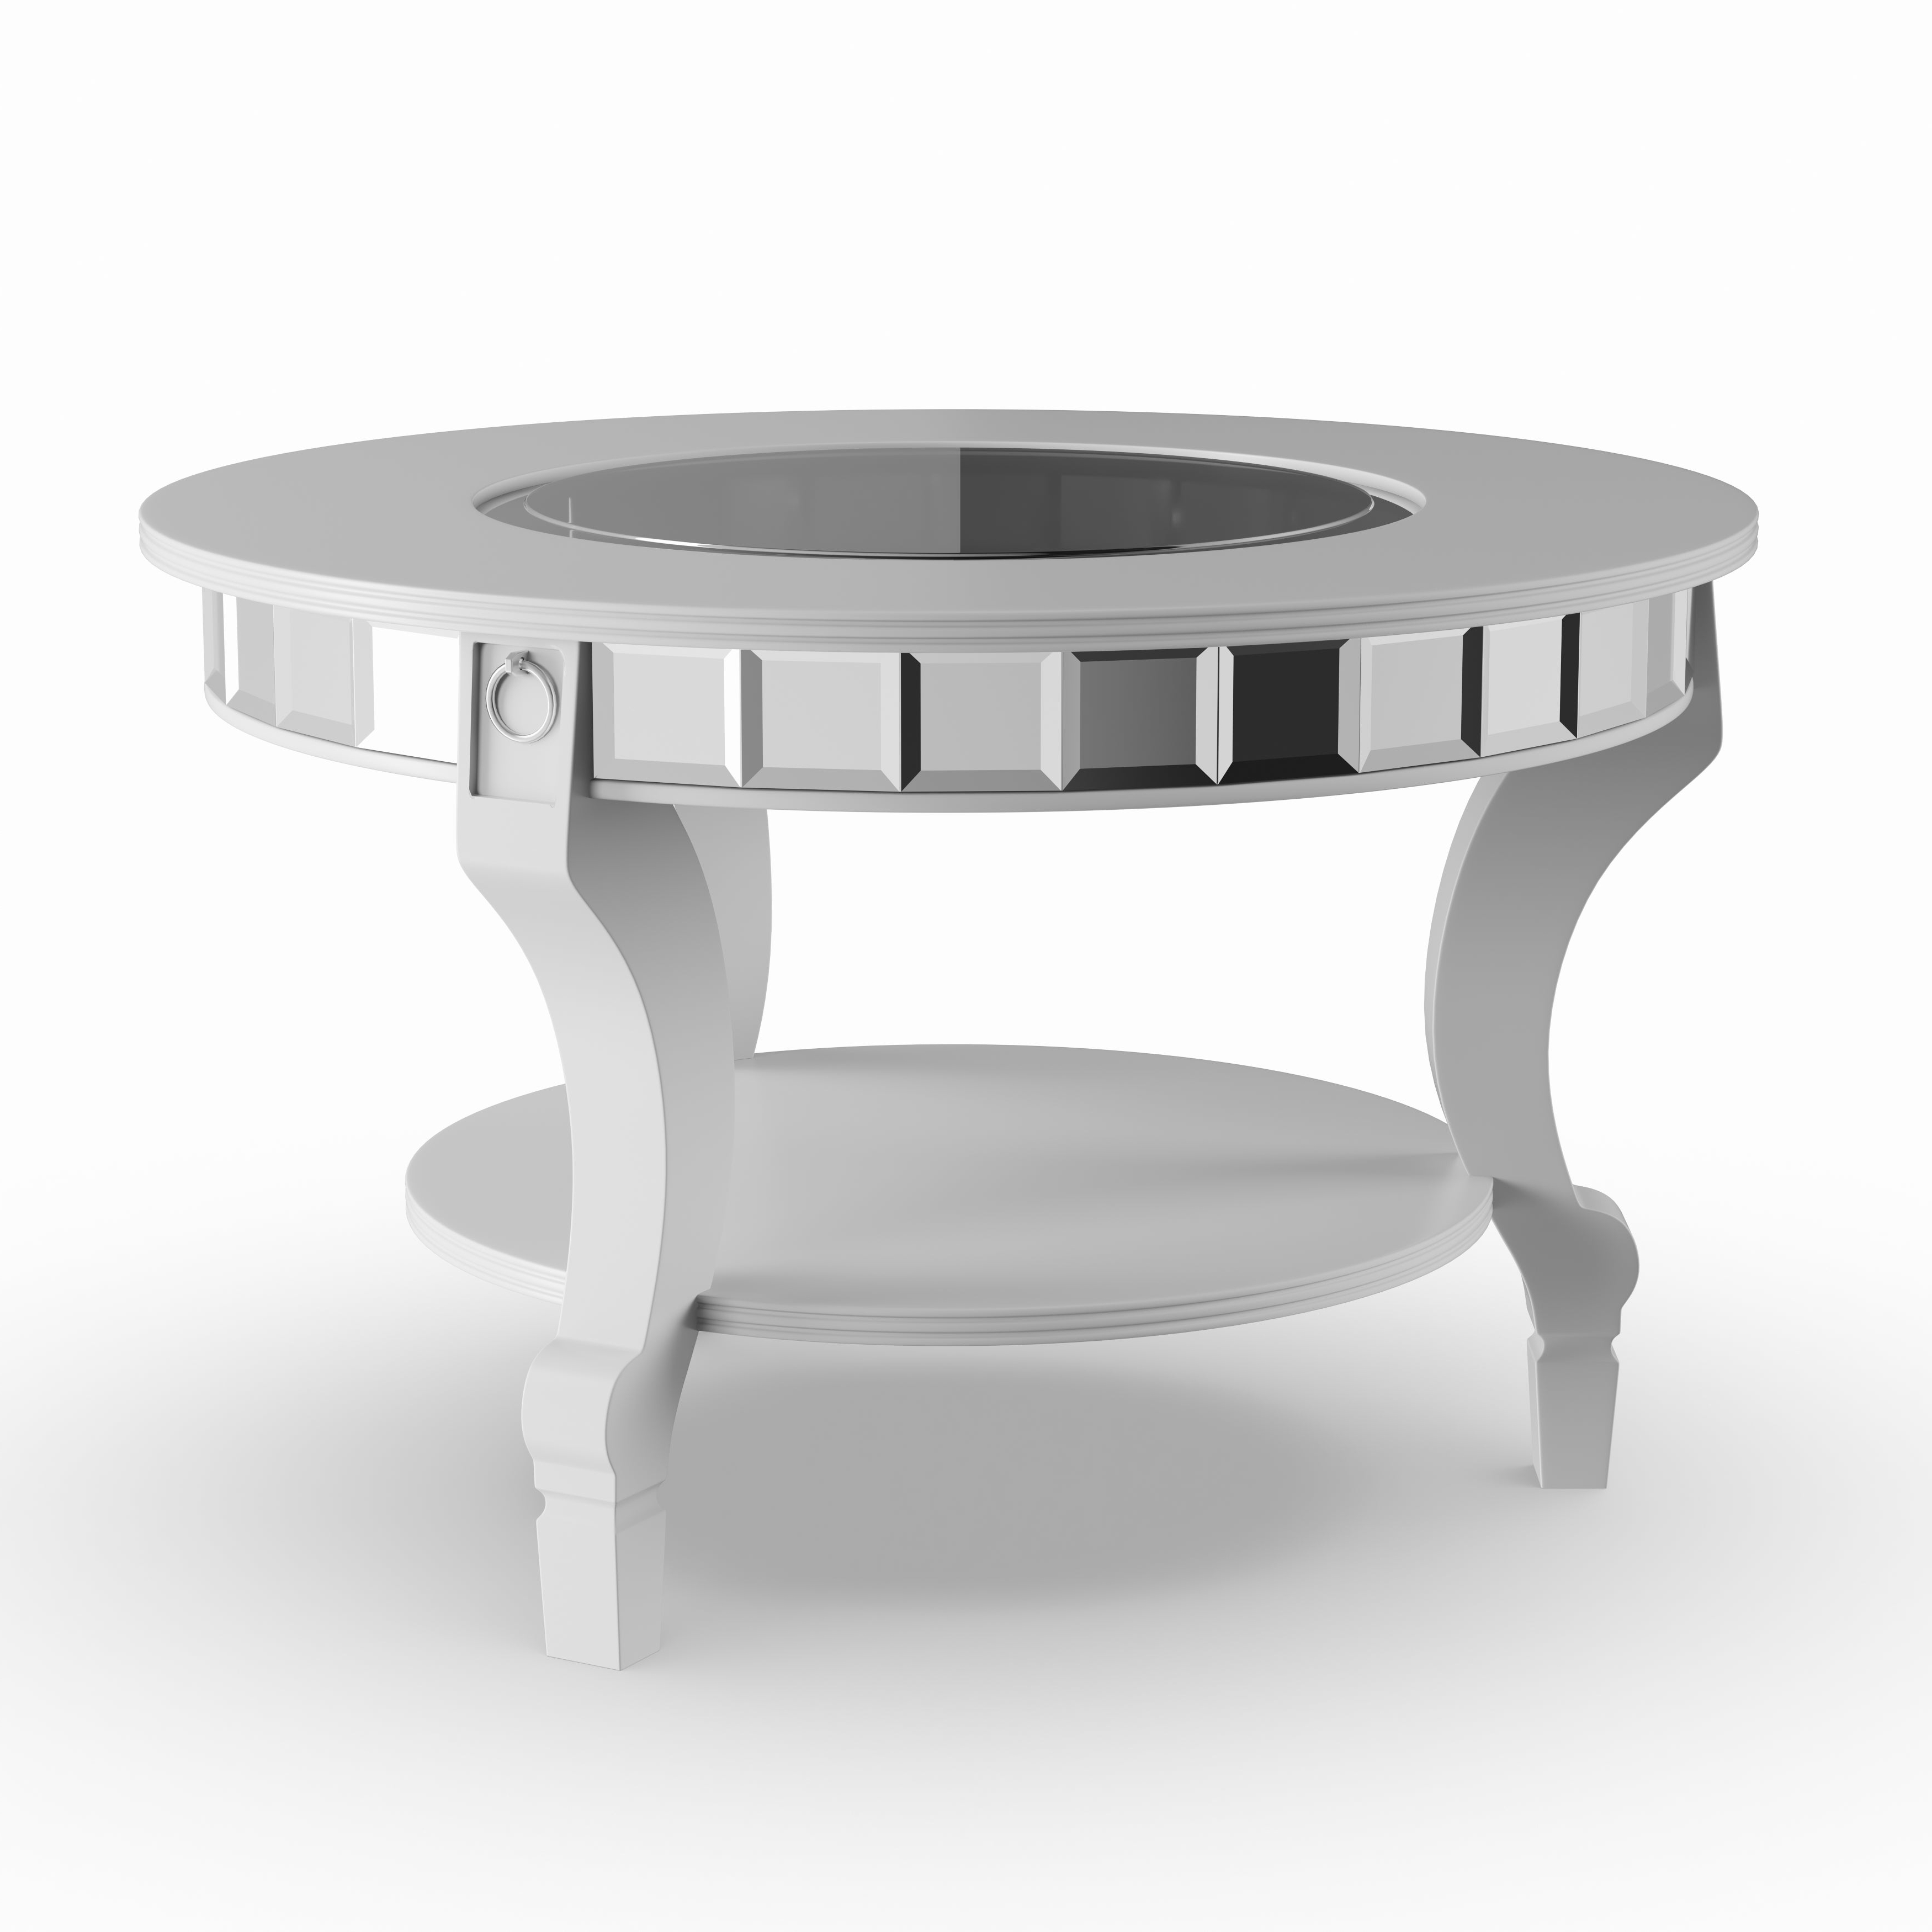 Silver Orchid Olivia Glam Mirrored Round Cocktail Table – Matte Silver Inside Most Recent Silver Orchid Olivia Glam Mirrored Round Cocktail Tables (View 2 of 20)